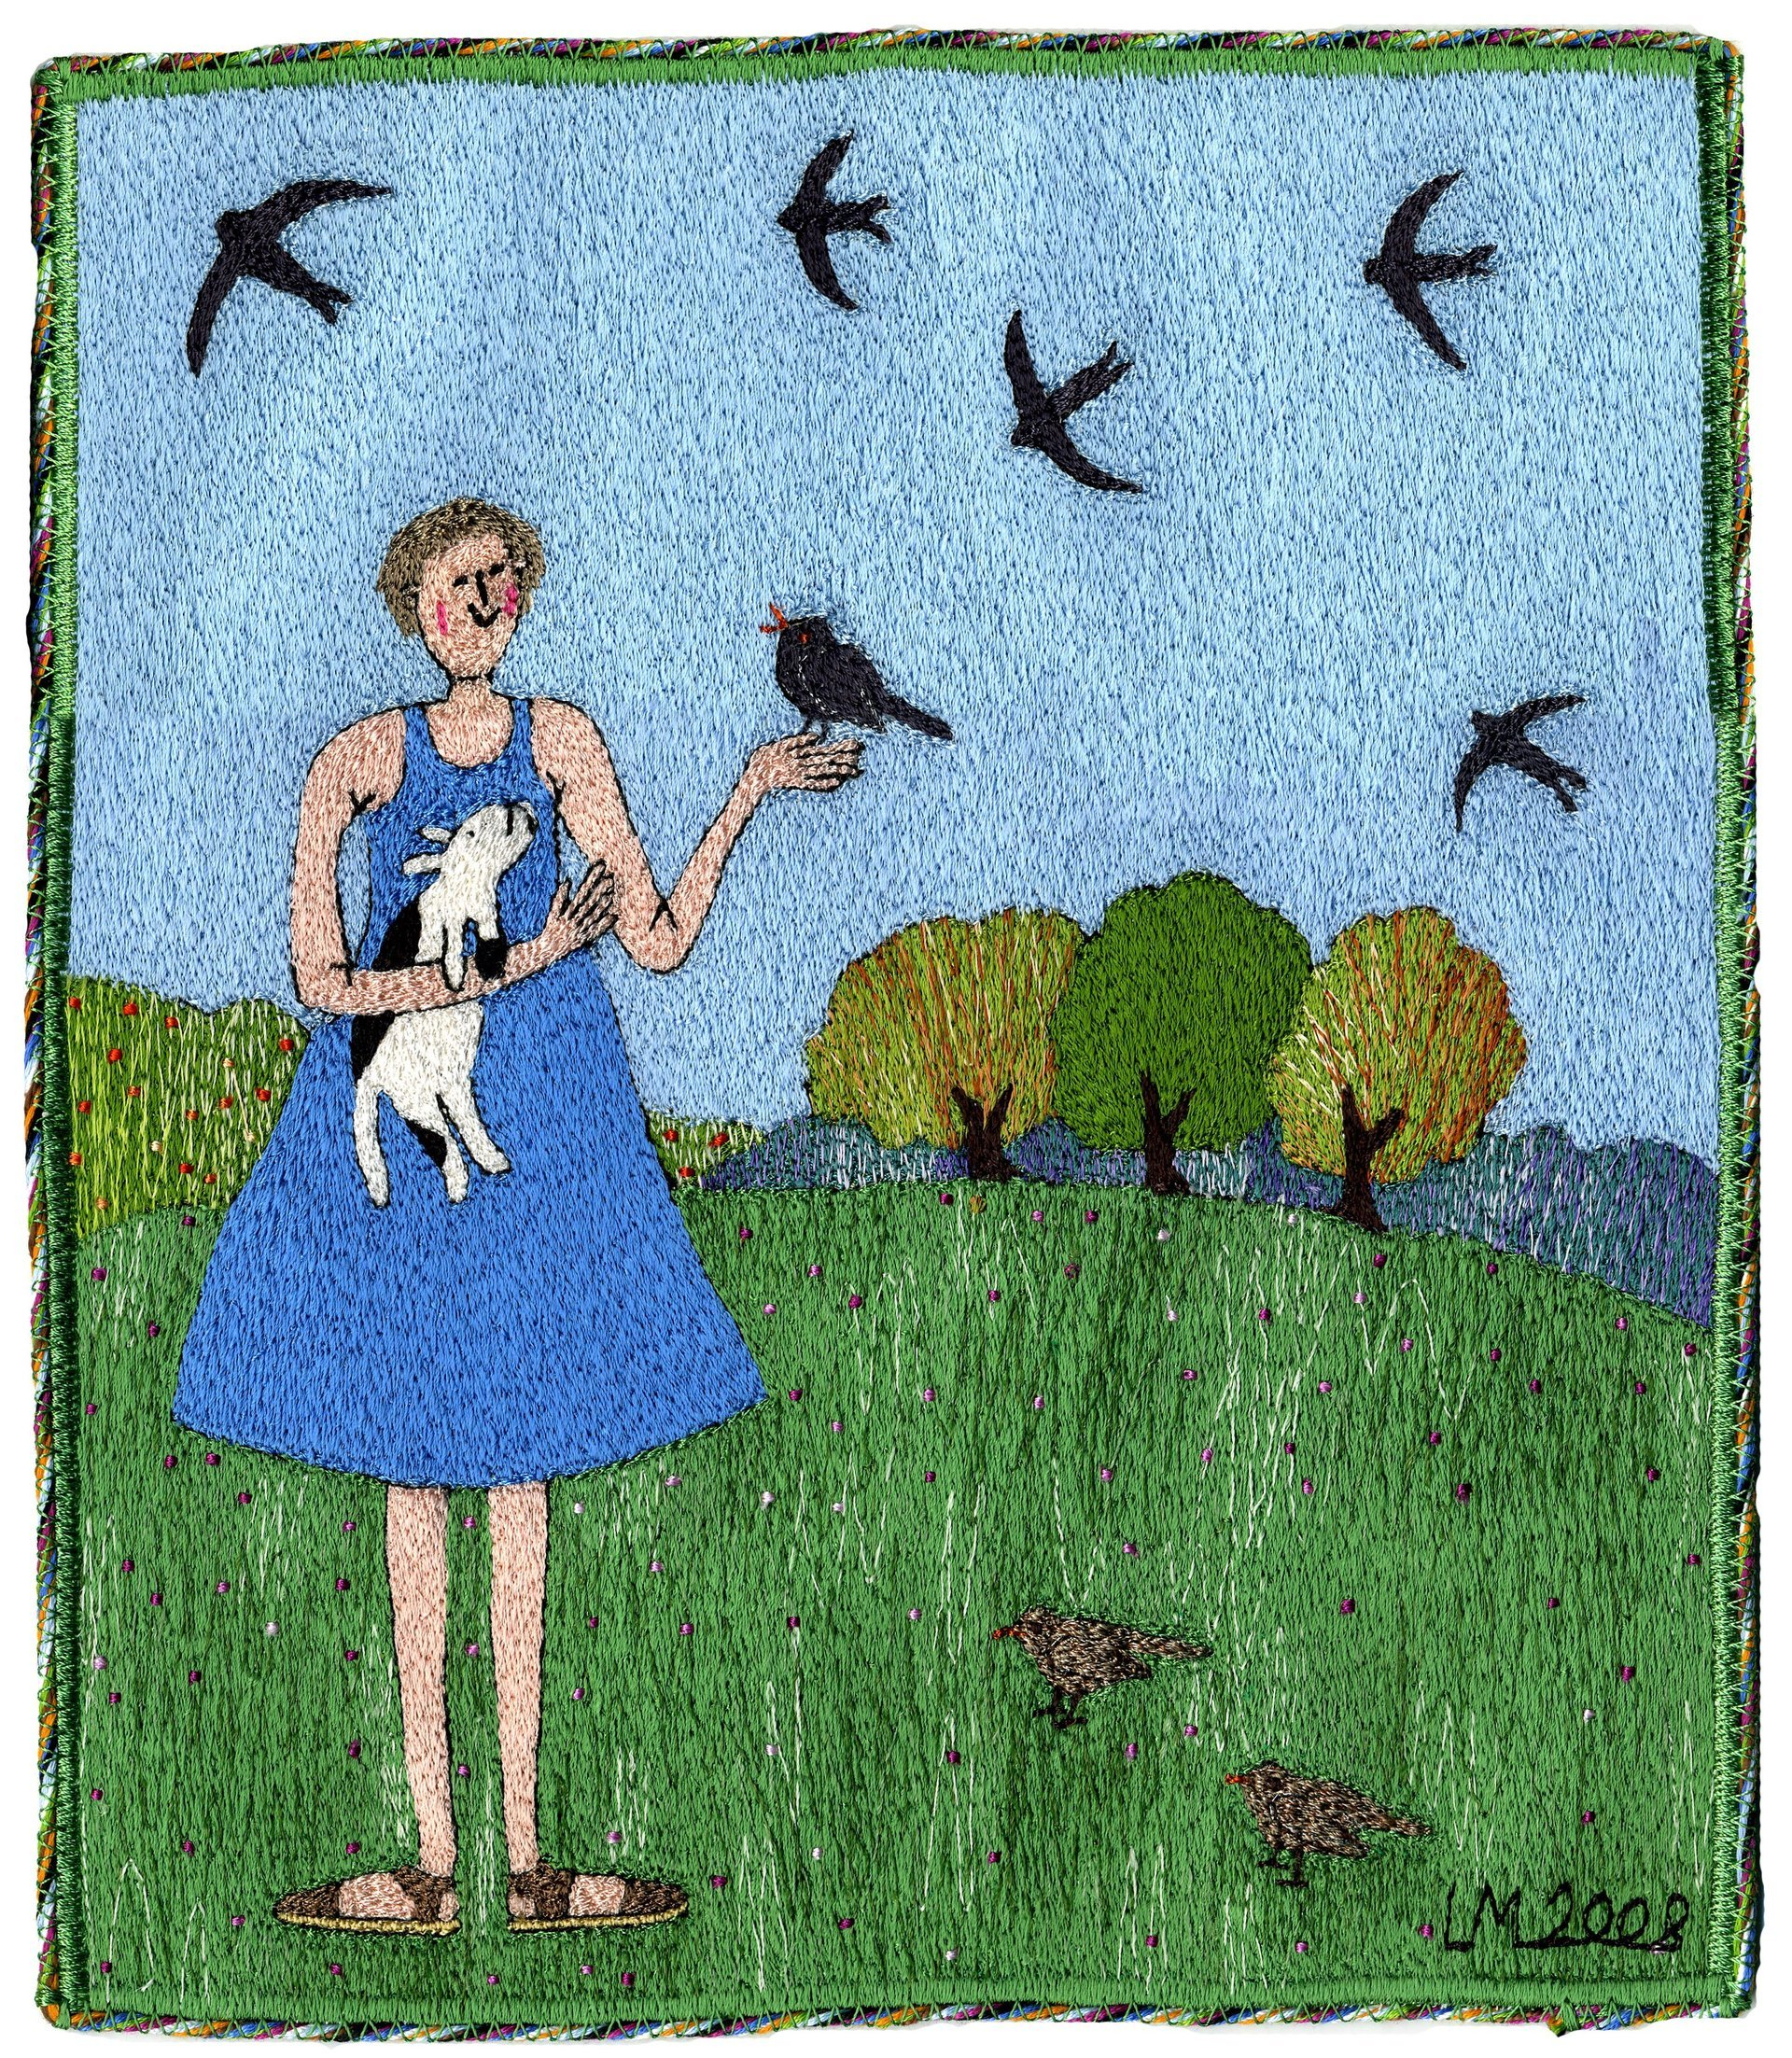 The Birds Sing Out Your Name. Machine embroidery by Linda Miller